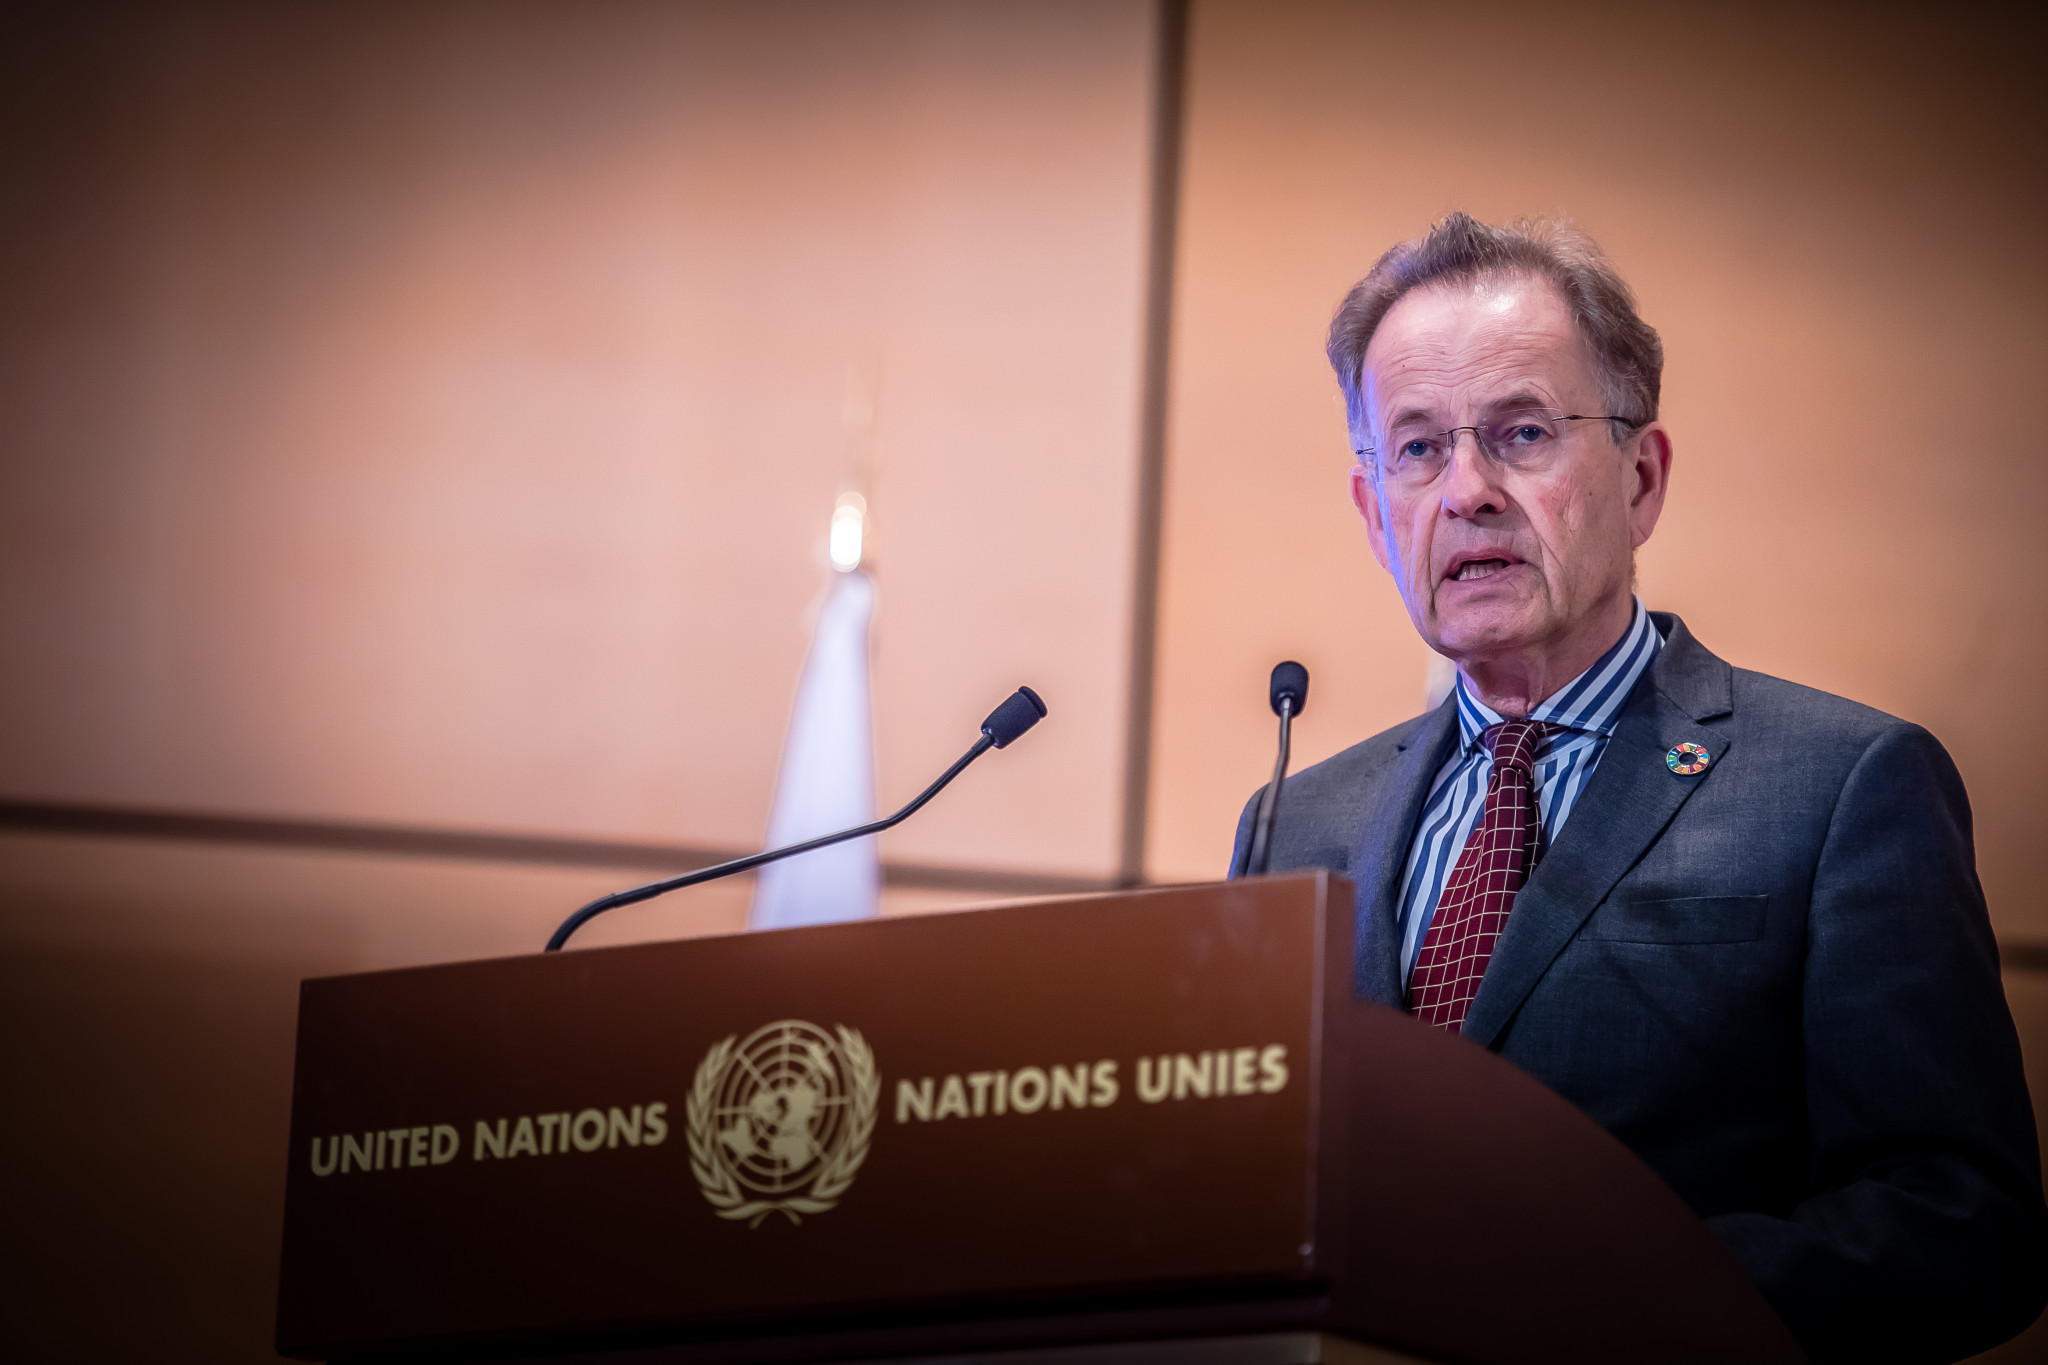 United Nations Geneva director general Michael Moller gave a welcoming speech at the joint demonstration at the United Nations Office at Geneva ©World Taekwondo